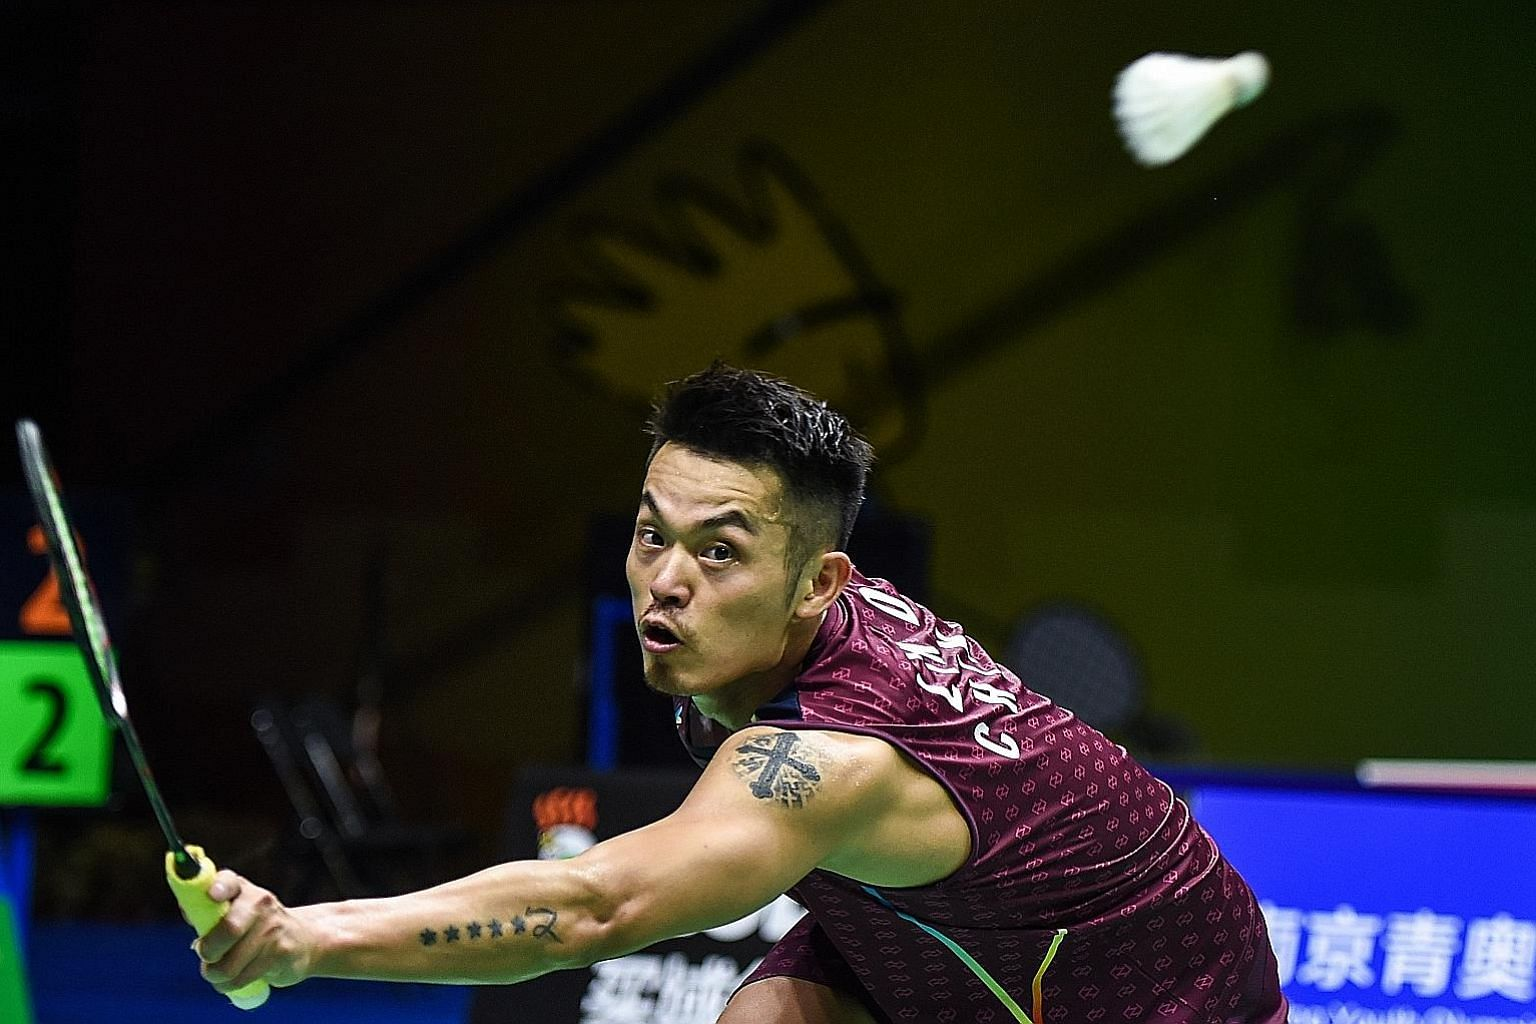 Lin Dan stretching to return against Shi Yuqi during their third-round encounter at the World Championships in Nanjing. The five-time world champion lost 21-15, 21-9 to his younger compatriot in straight games, but has vowed to continue playing at th